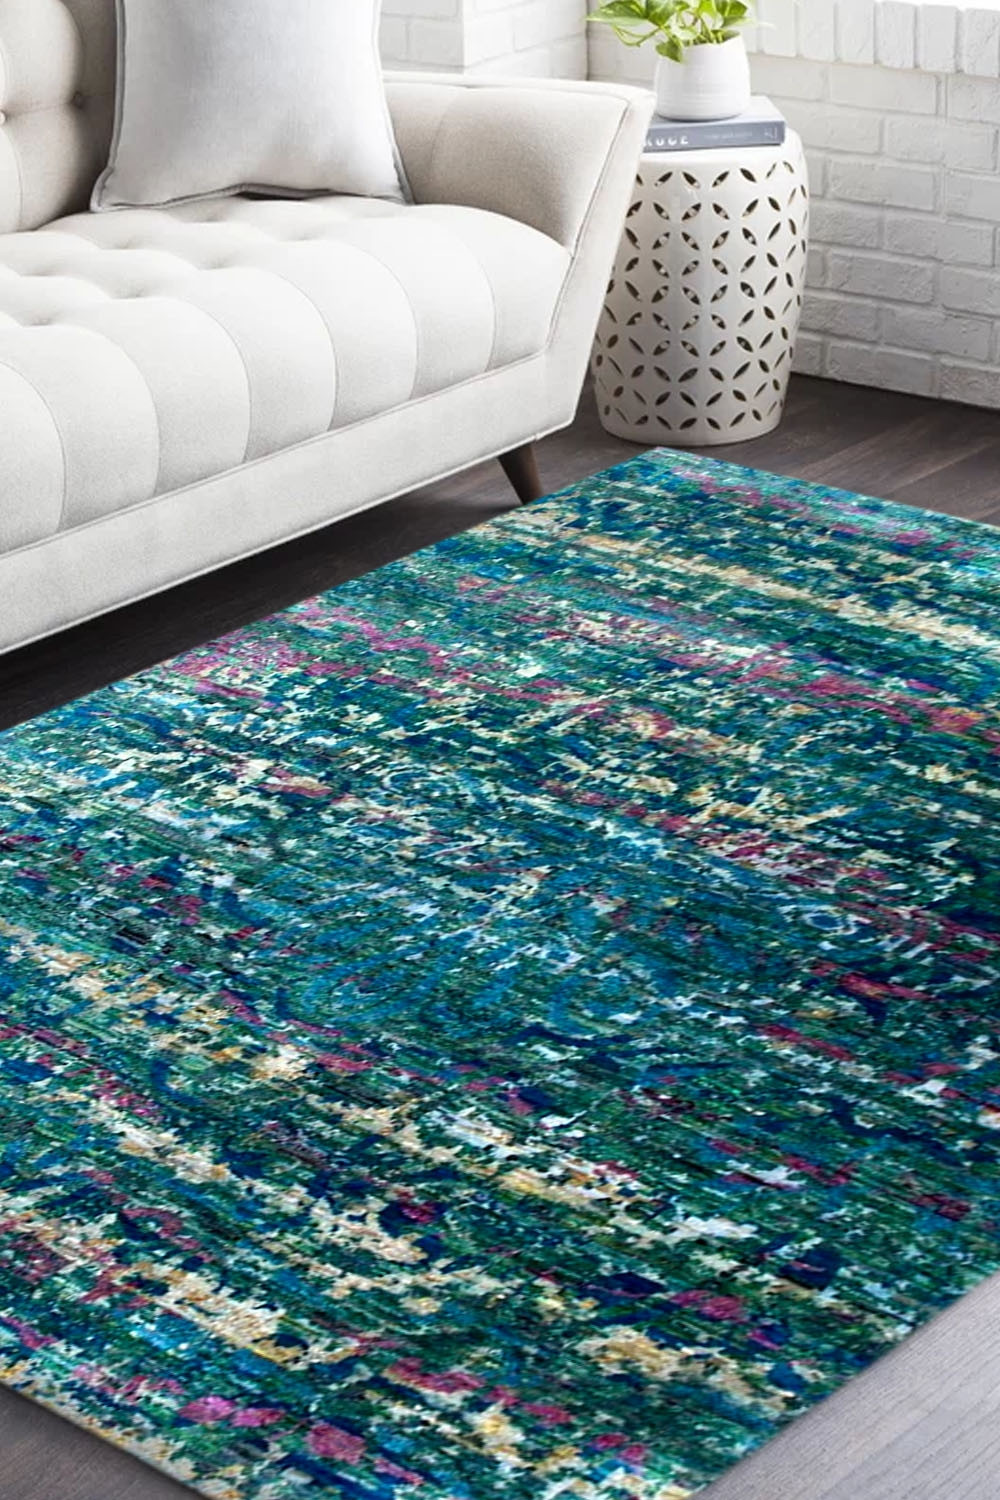 Deep Blue Sea Sari Silk Area Rug In Green And Blue Color At Low Price